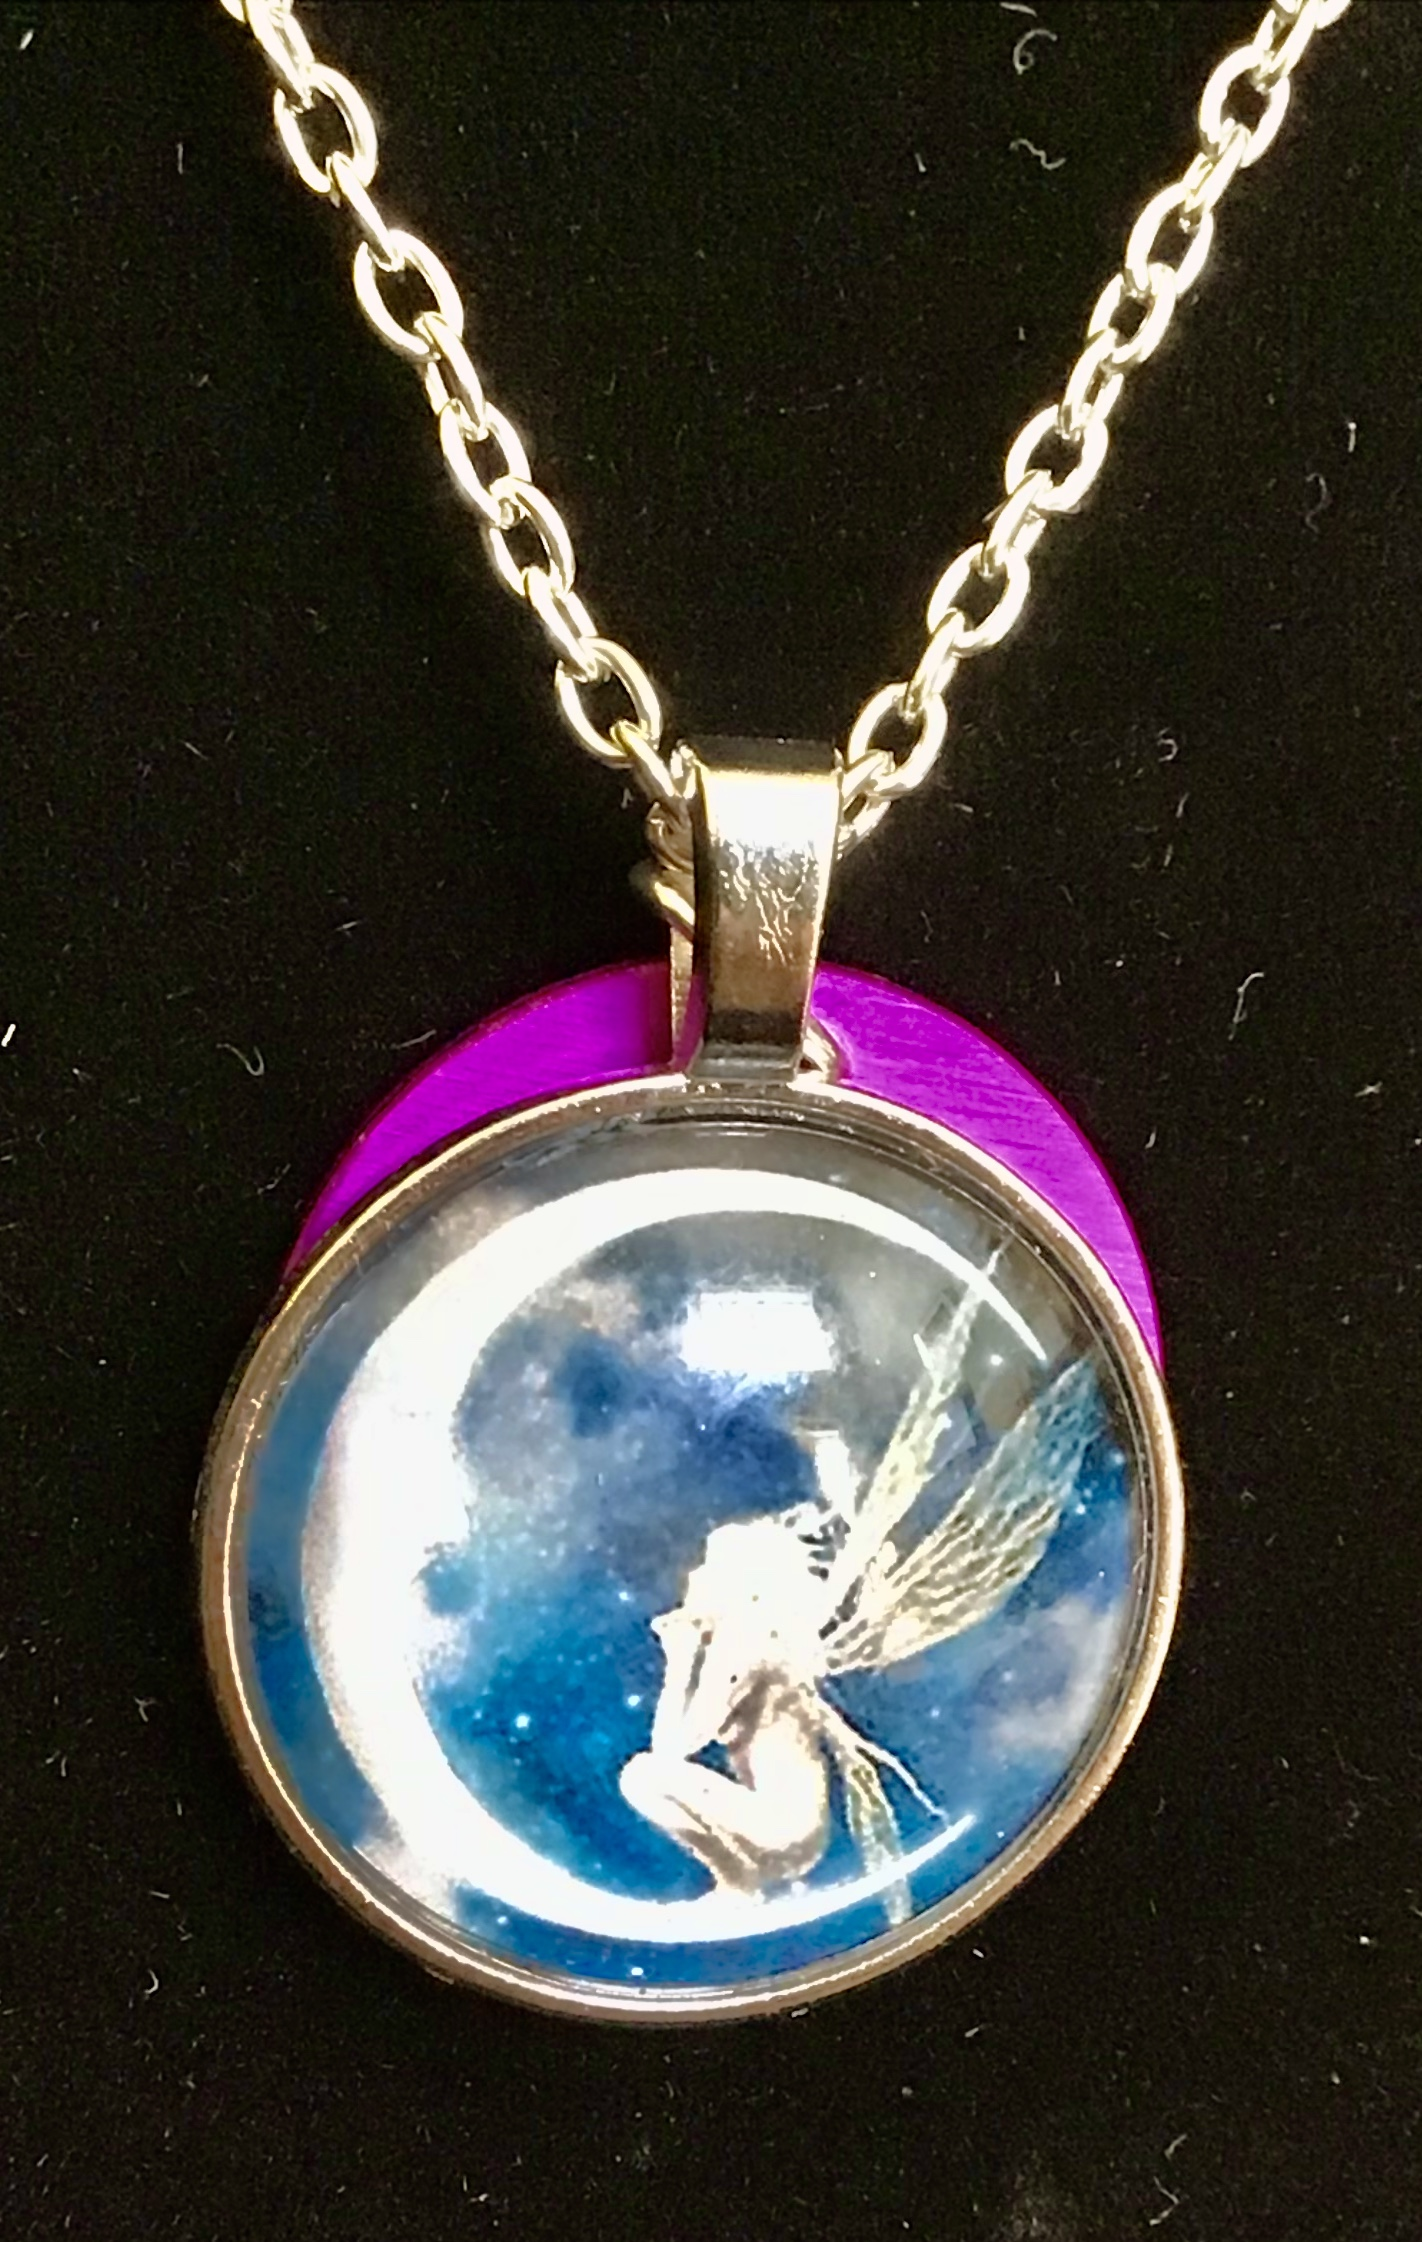 Fairy & Crescent Moon Necklace w/ Purple Energy Disk